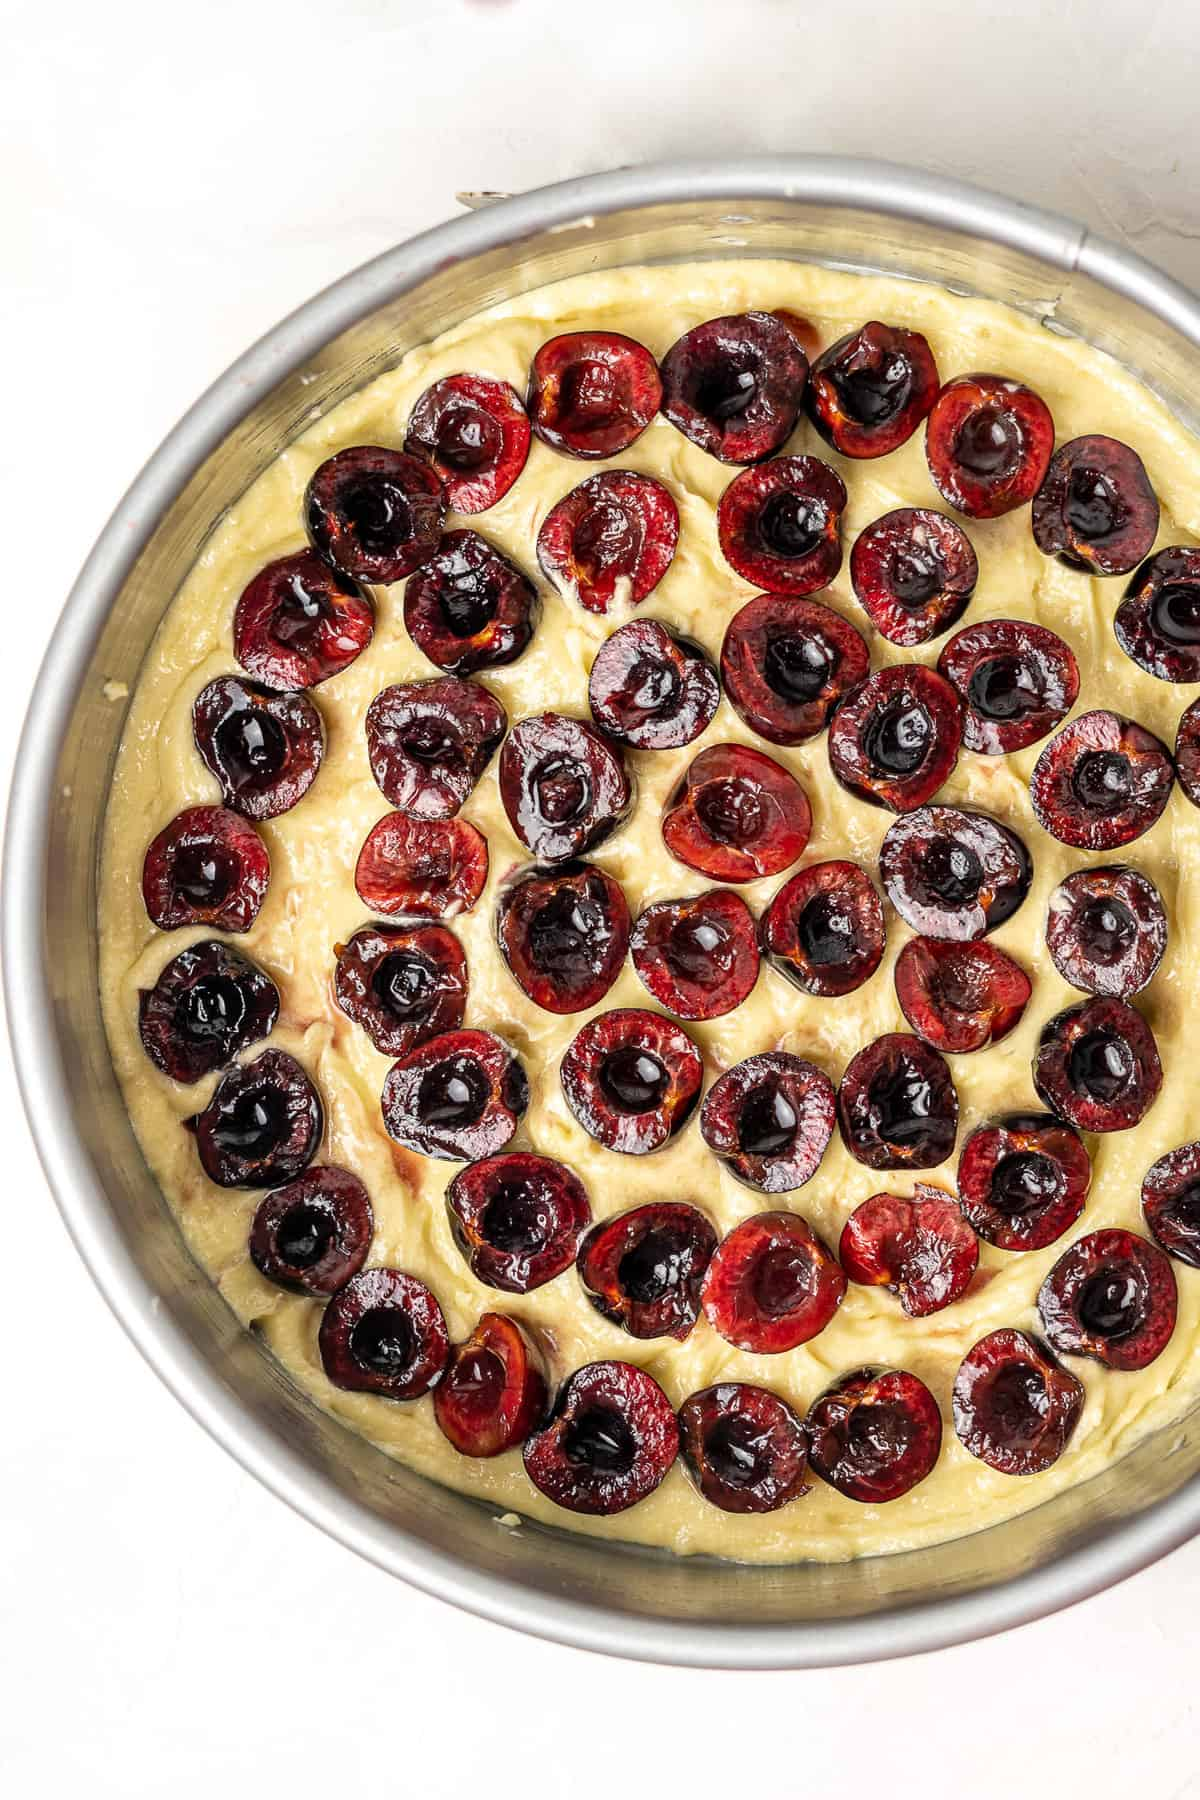 Unbaked cherry almond cake with layer of cherries